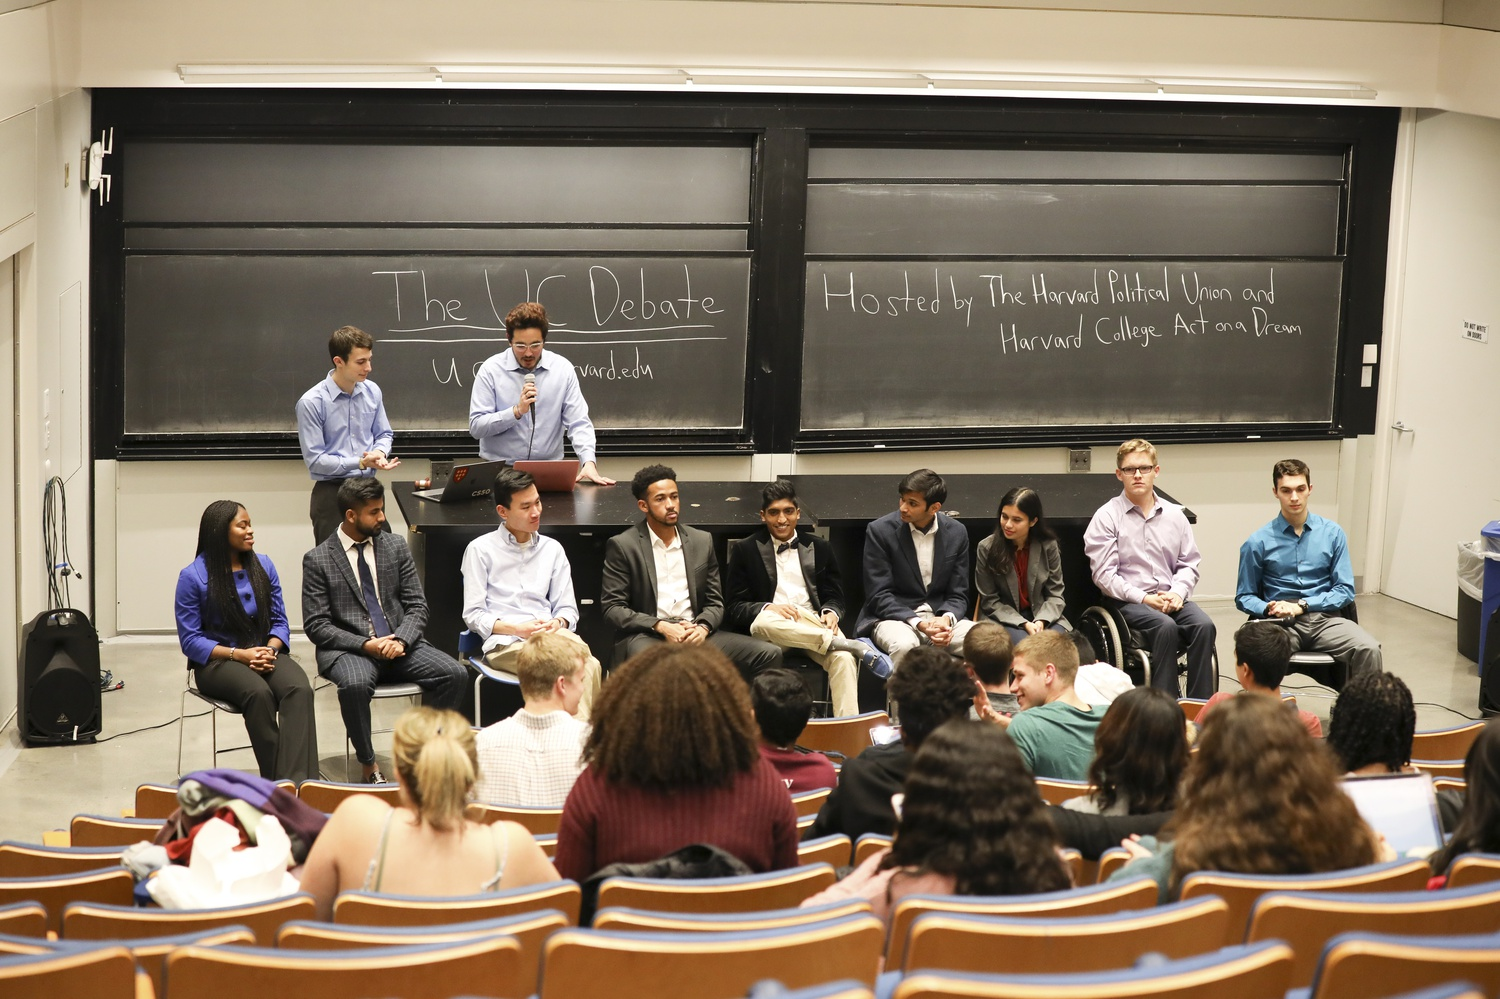 The Harvard Political Union and Harvard College Act on a Dream co-sponsored a debate Saturday afternoon for the candidates running in the Undergraduate Council presidential election.